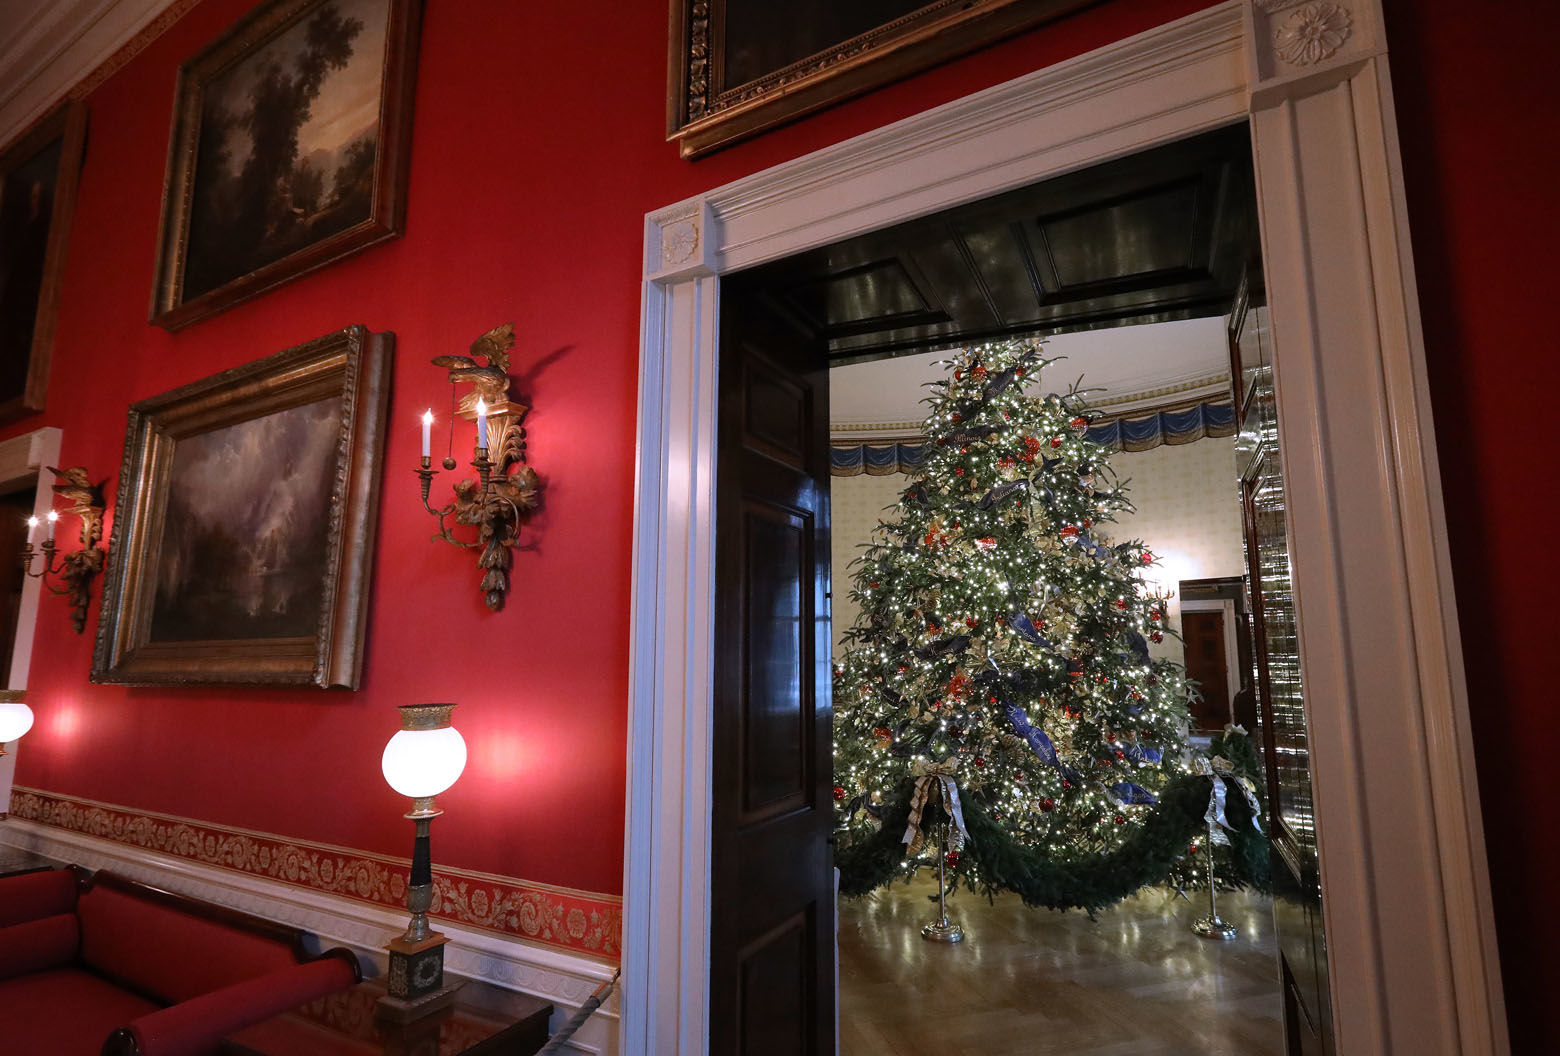 WASHINGTON, DC - NOVEMBER 26: At 18 feet tall, the official White House Christmas is dressed in over 500 feet of blue velvet ribbon embroidered in gold with each state and territory, on display inside the Blue Room at the White House November 26, 2018 in Washington, DC. The 2018 theme of the White House holiday decorations is 'American Treasures,' and features patriotic displays highlighting the country's 'unique heritage.' The White House expects to host 100 open houses and more than 30,000 guests who will tour the topiary trees, architectural models of major U.S. cities, the Gold Star family tree and national monuments in gingerbread. (Photo by Chip Somodevilla/Getty Images)